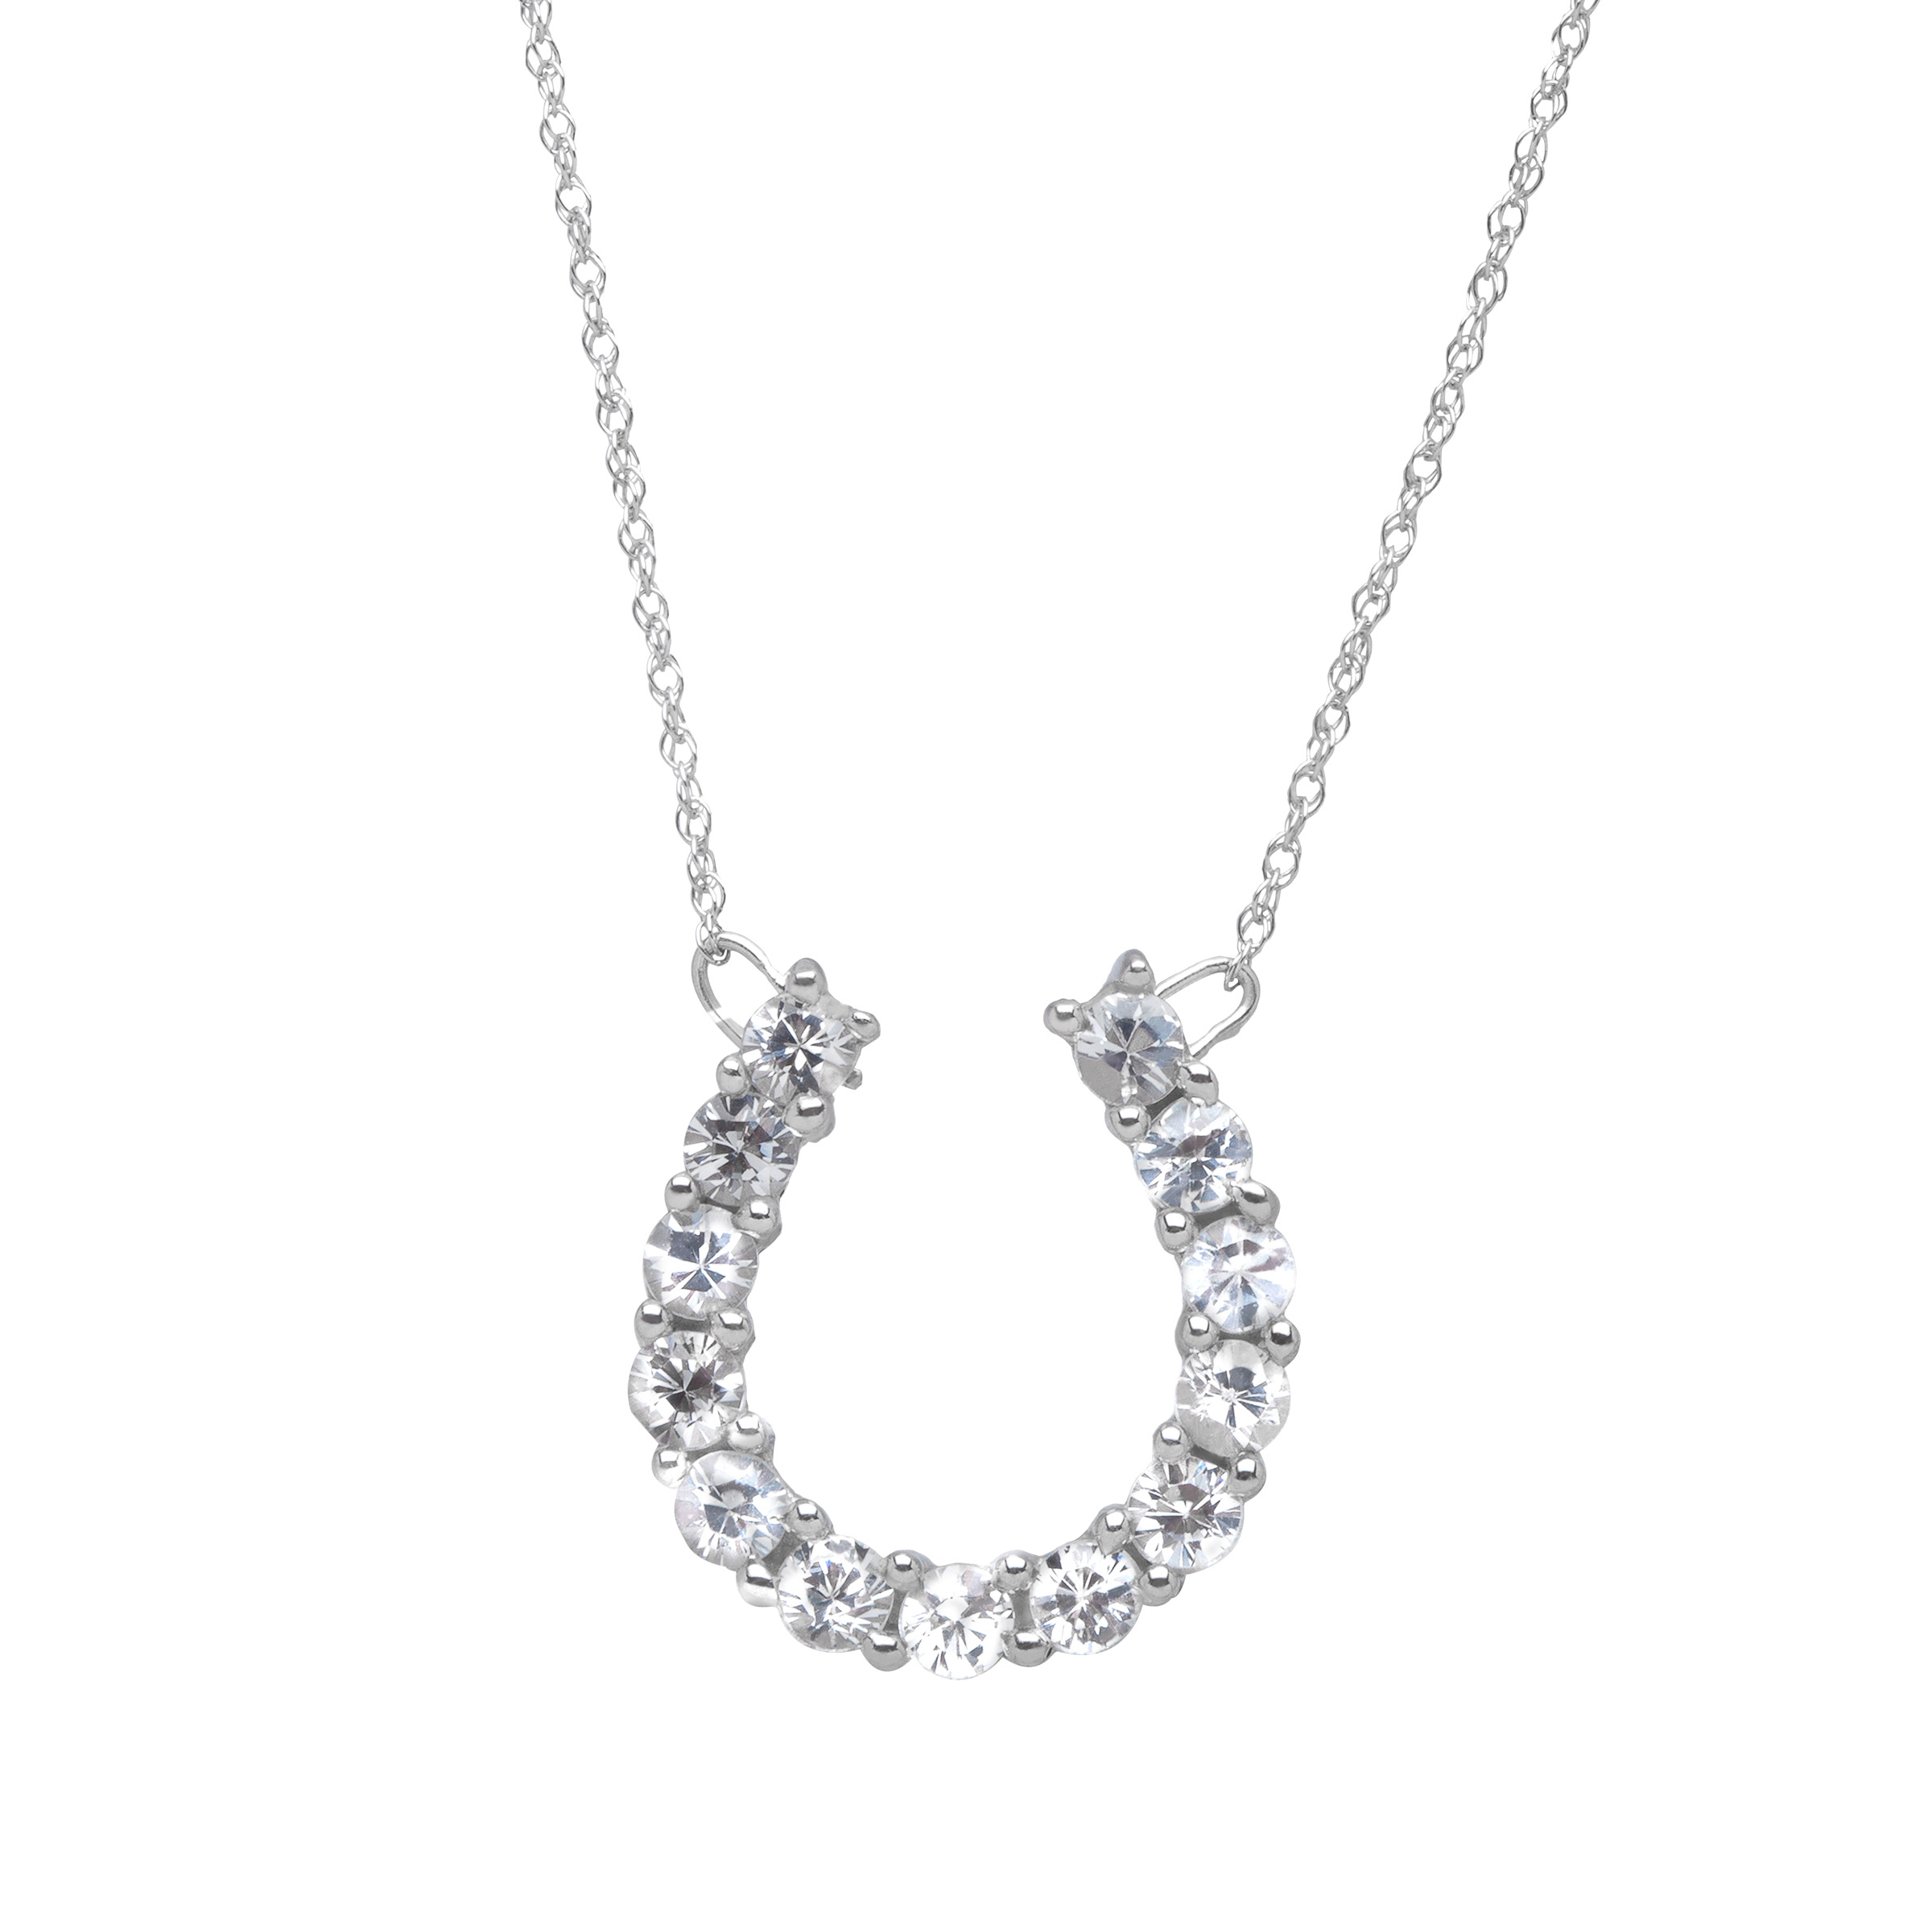 1 ct Created White Sapphire Horseshoe Necklace in 10kt White Gold by Richline Group